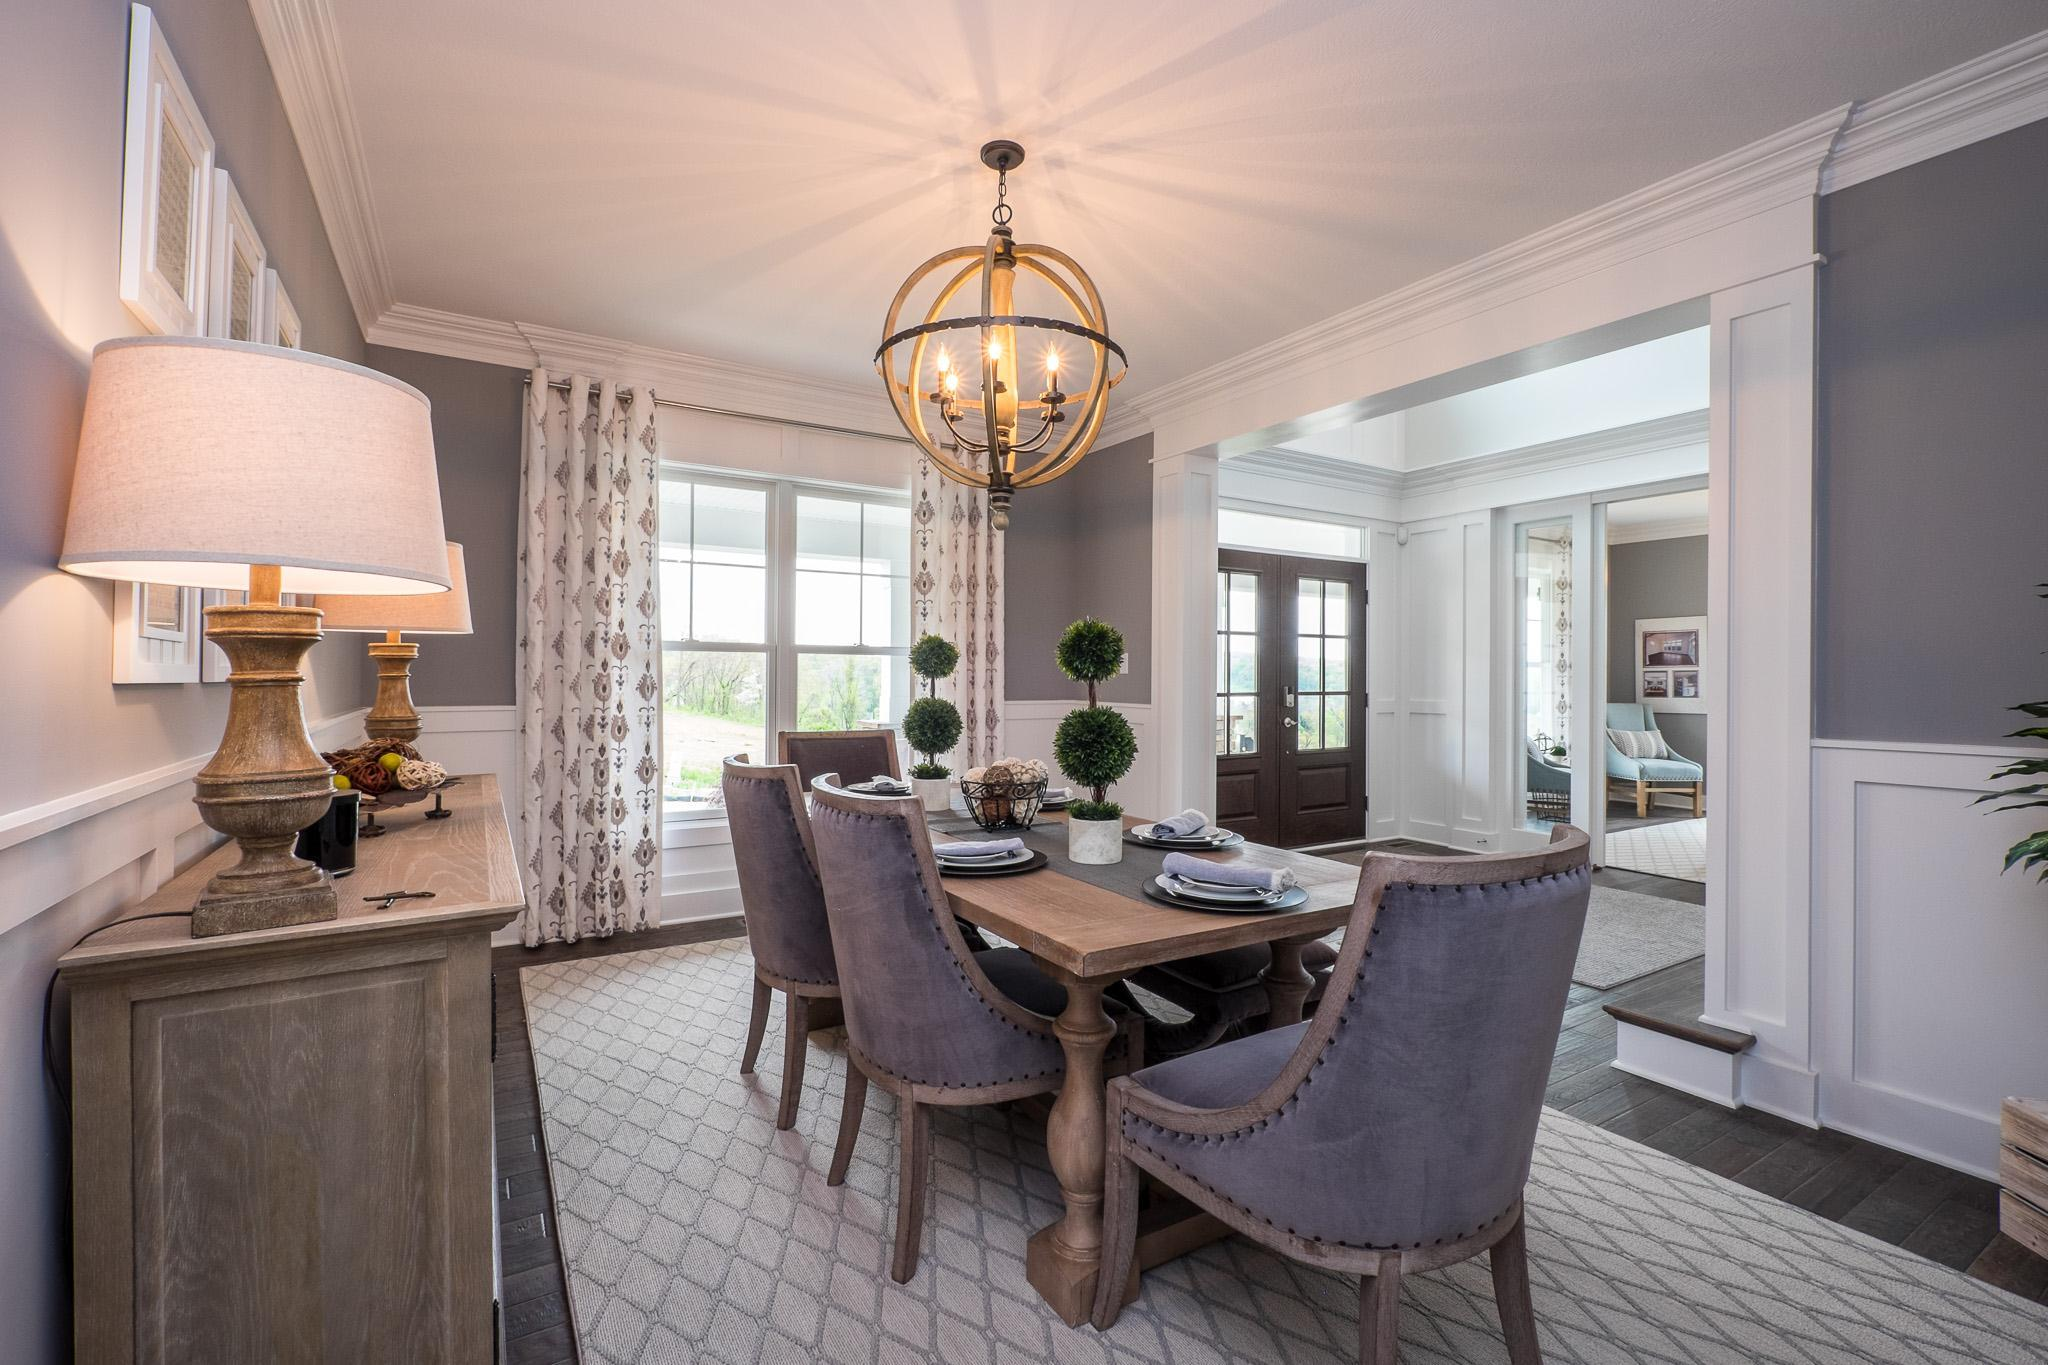 Living Area featured in the Cambridge By Infinity Custom Homes in Pittsburgh, PA